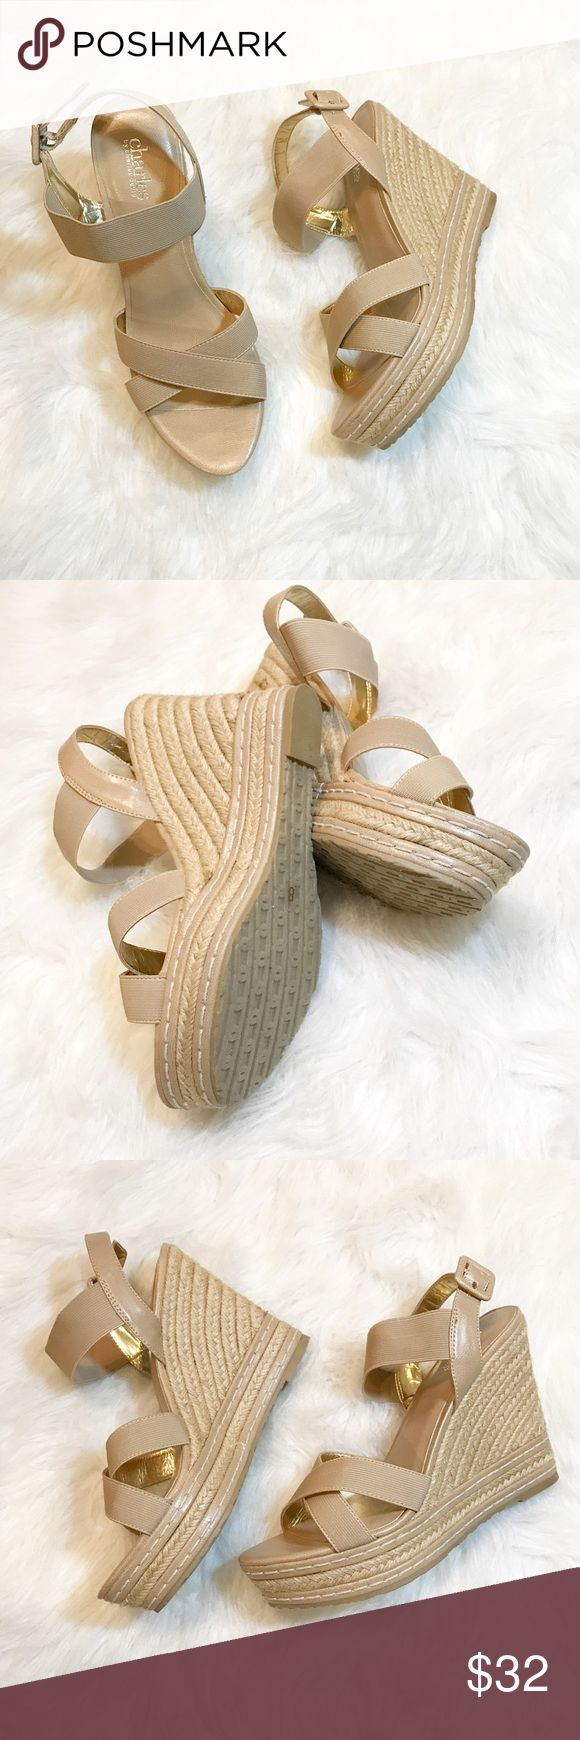 Charles by Charles David Wedge heels Gorgeous tan wedges by Charles by Charles David. Like new condition, bottoms of these shoes look new!!! Very comfortable and versatile shoe! Size 8. No trades, offers welcom. Charles David Shoes Wedges